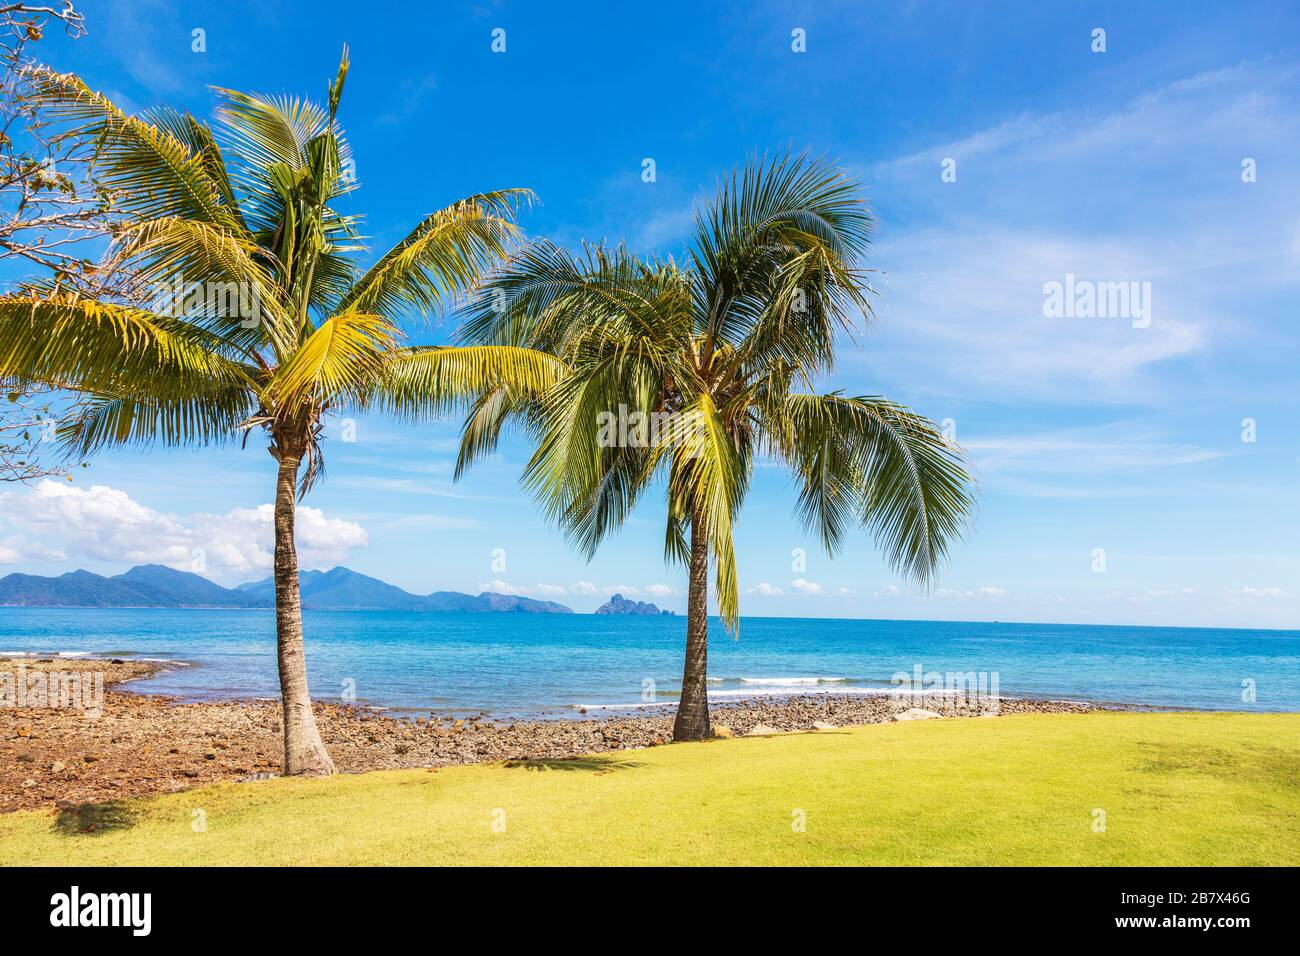 View across the Andaman Sea and  Anak Datai Island from the 16th putting green at the Rainforest Golf Course, The Els Club, Teluk Datai, Langkawi, Stock Photo